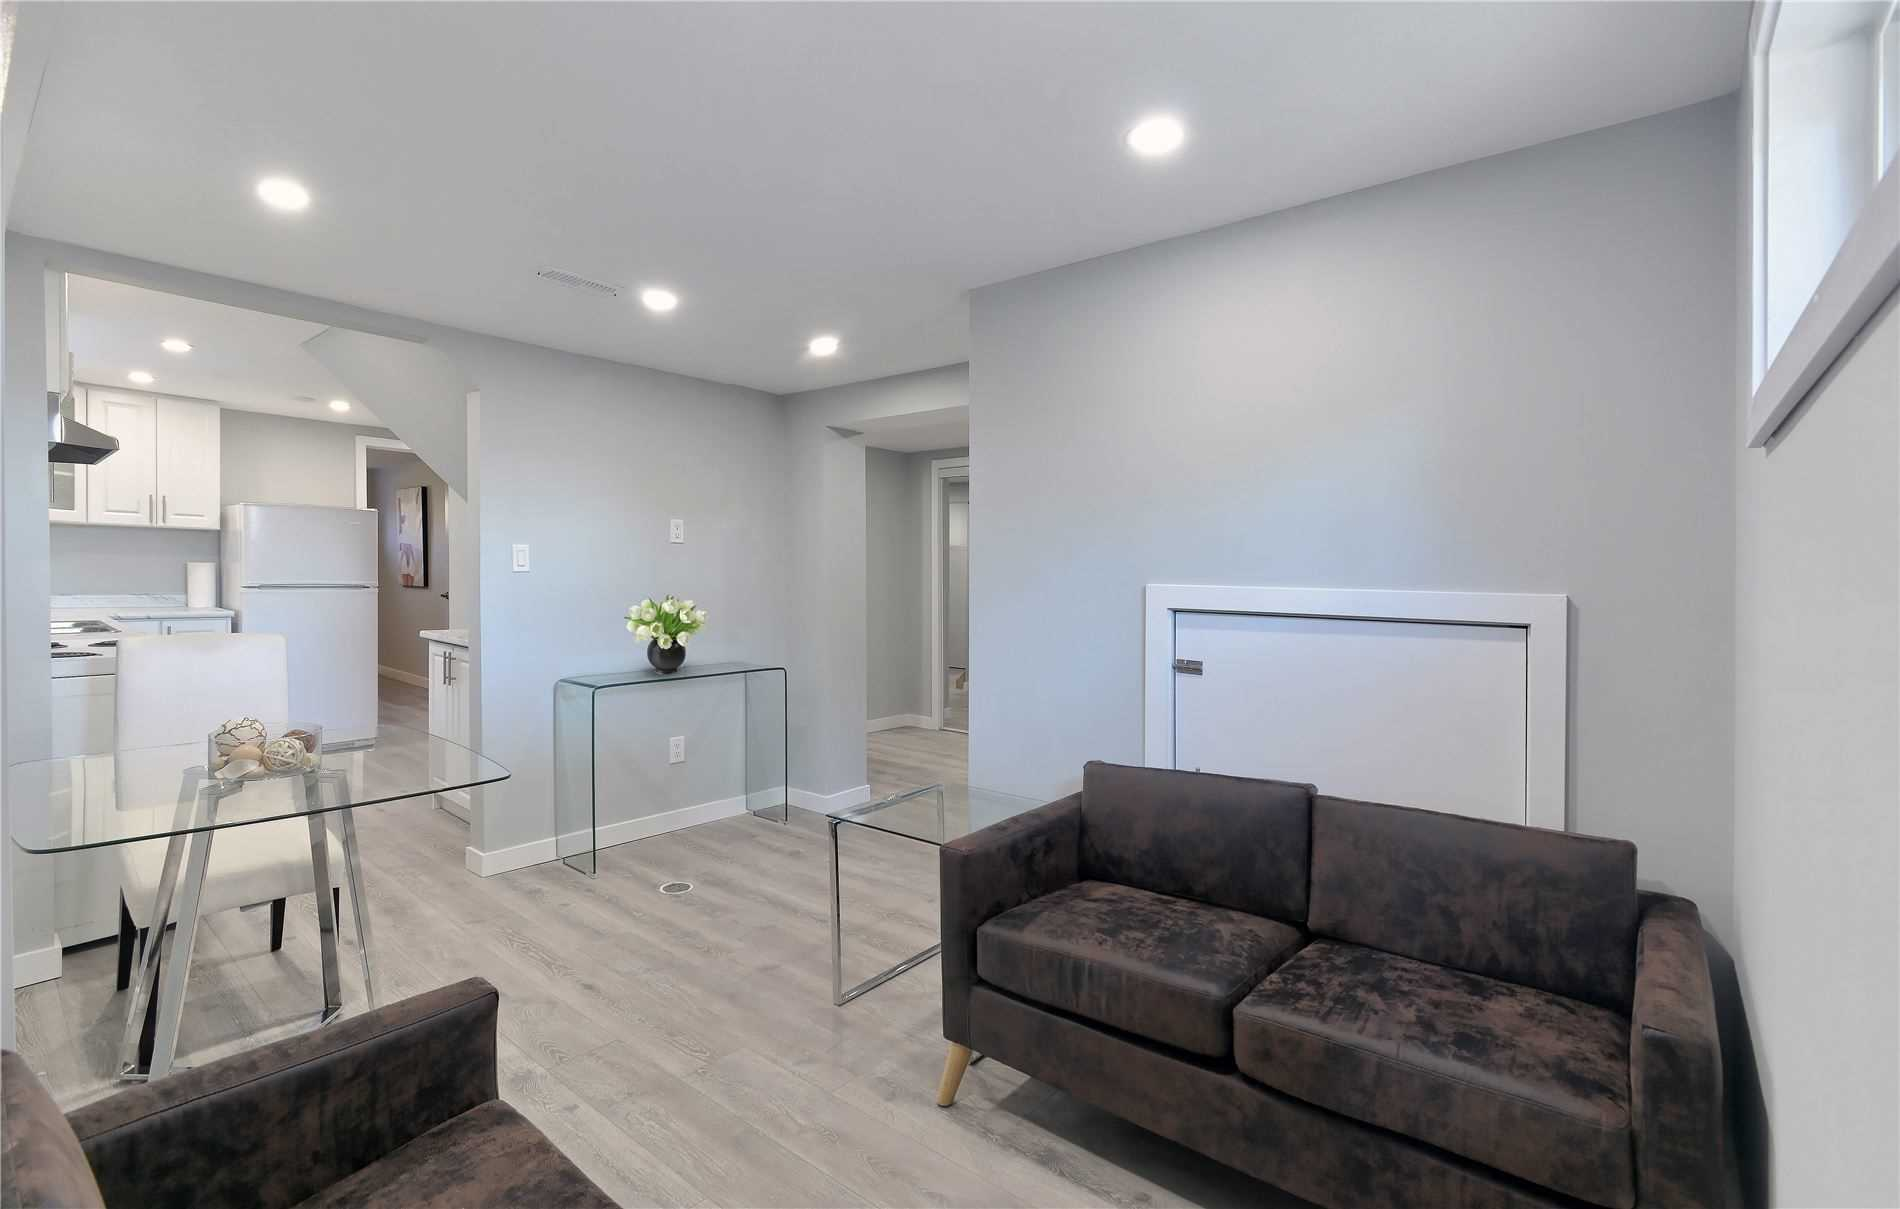 Semi-Detached For Lease In Mississauga , 2 Bedrooms Bedrooms, ,1 BathroomBathrooms,Semi-Detached,For Lease,Lower,Fontwell